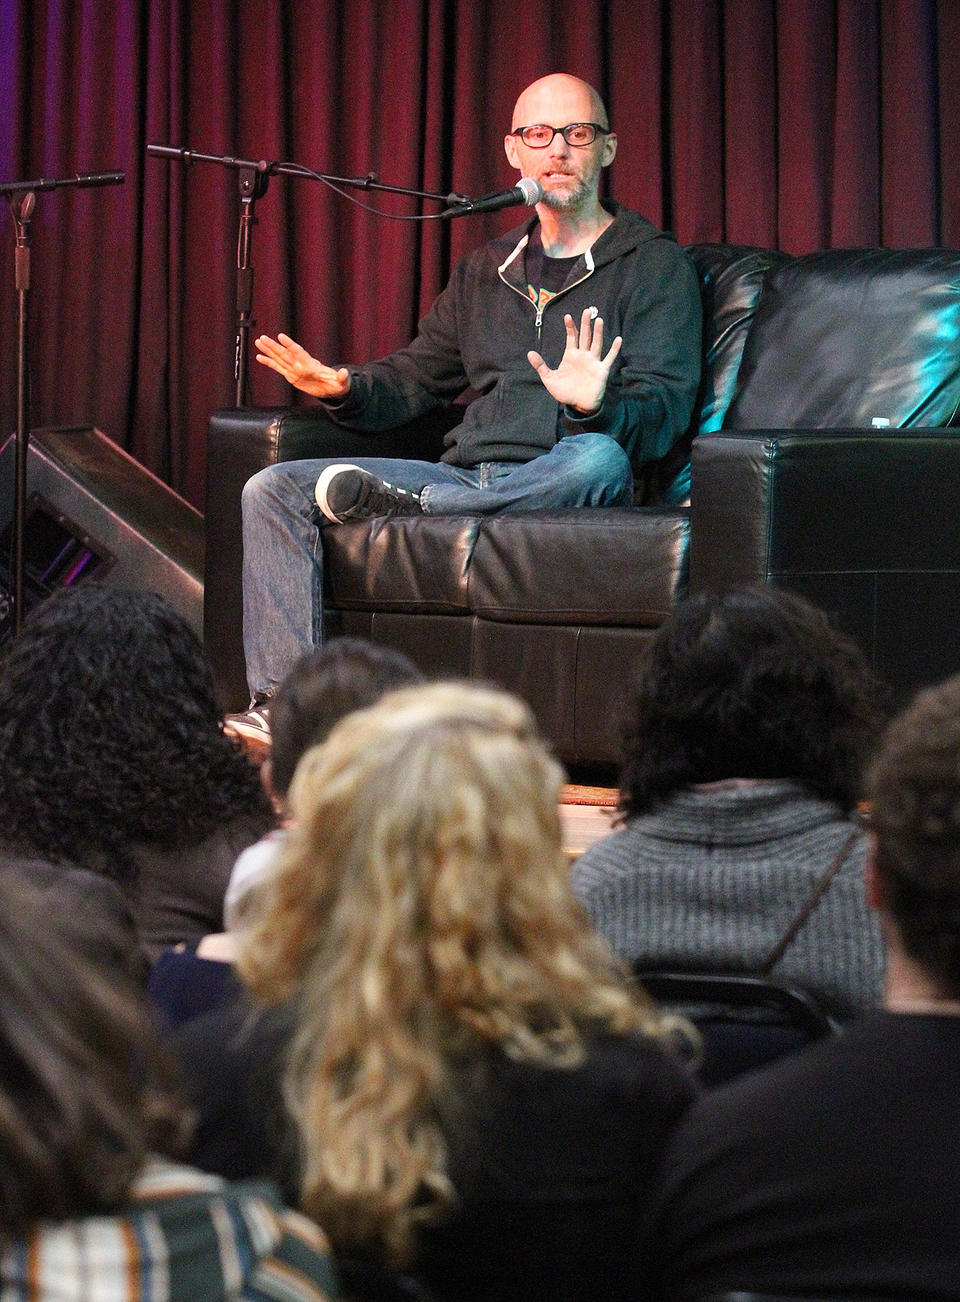 Moby answers an audience question at LAMA in Pasadena where the popular musician was interviewed on Wednesday, January 15, 2014. Moby, is an American singer-songwriter, musician, DJ and photographer. He is well known for his electronic music. (Tim Berger/Staff Photographer)